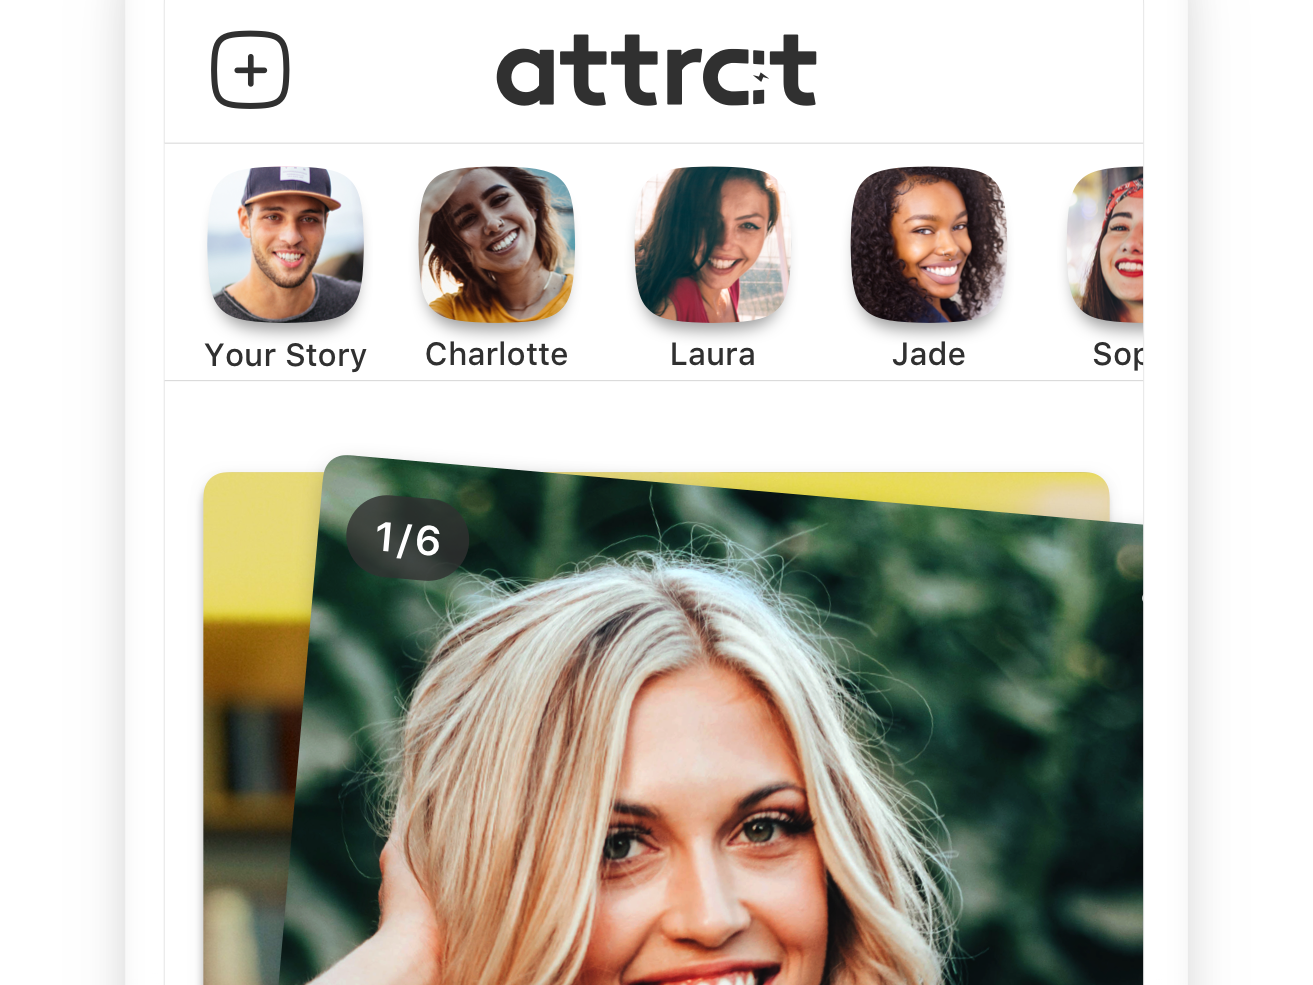 Tired of Tinder? There are more apps to try - Irish Examiner